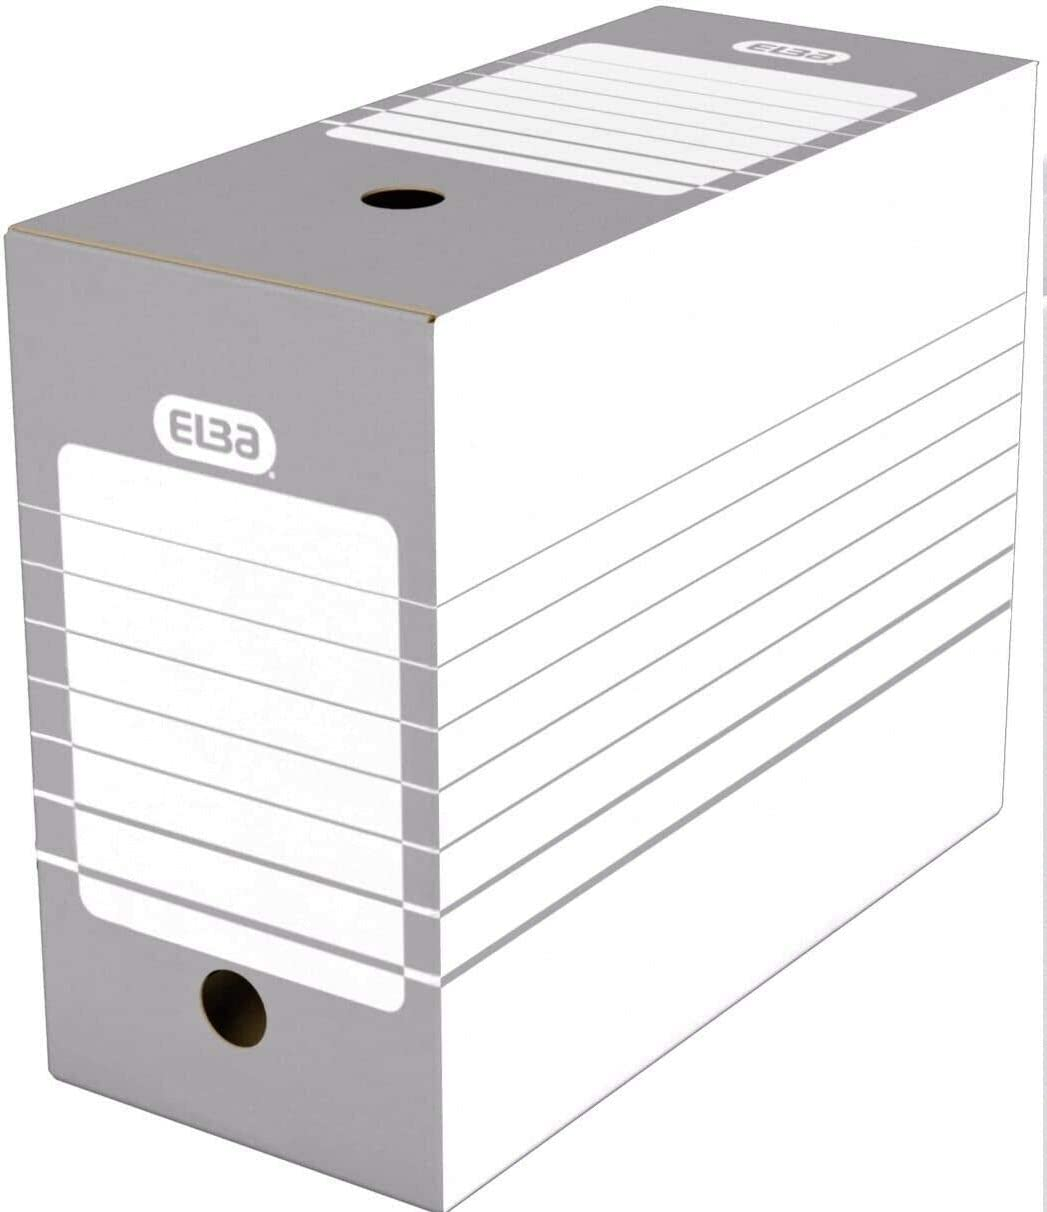 Elba Pack of 20 A4 Archive Storage Boxes 15cm